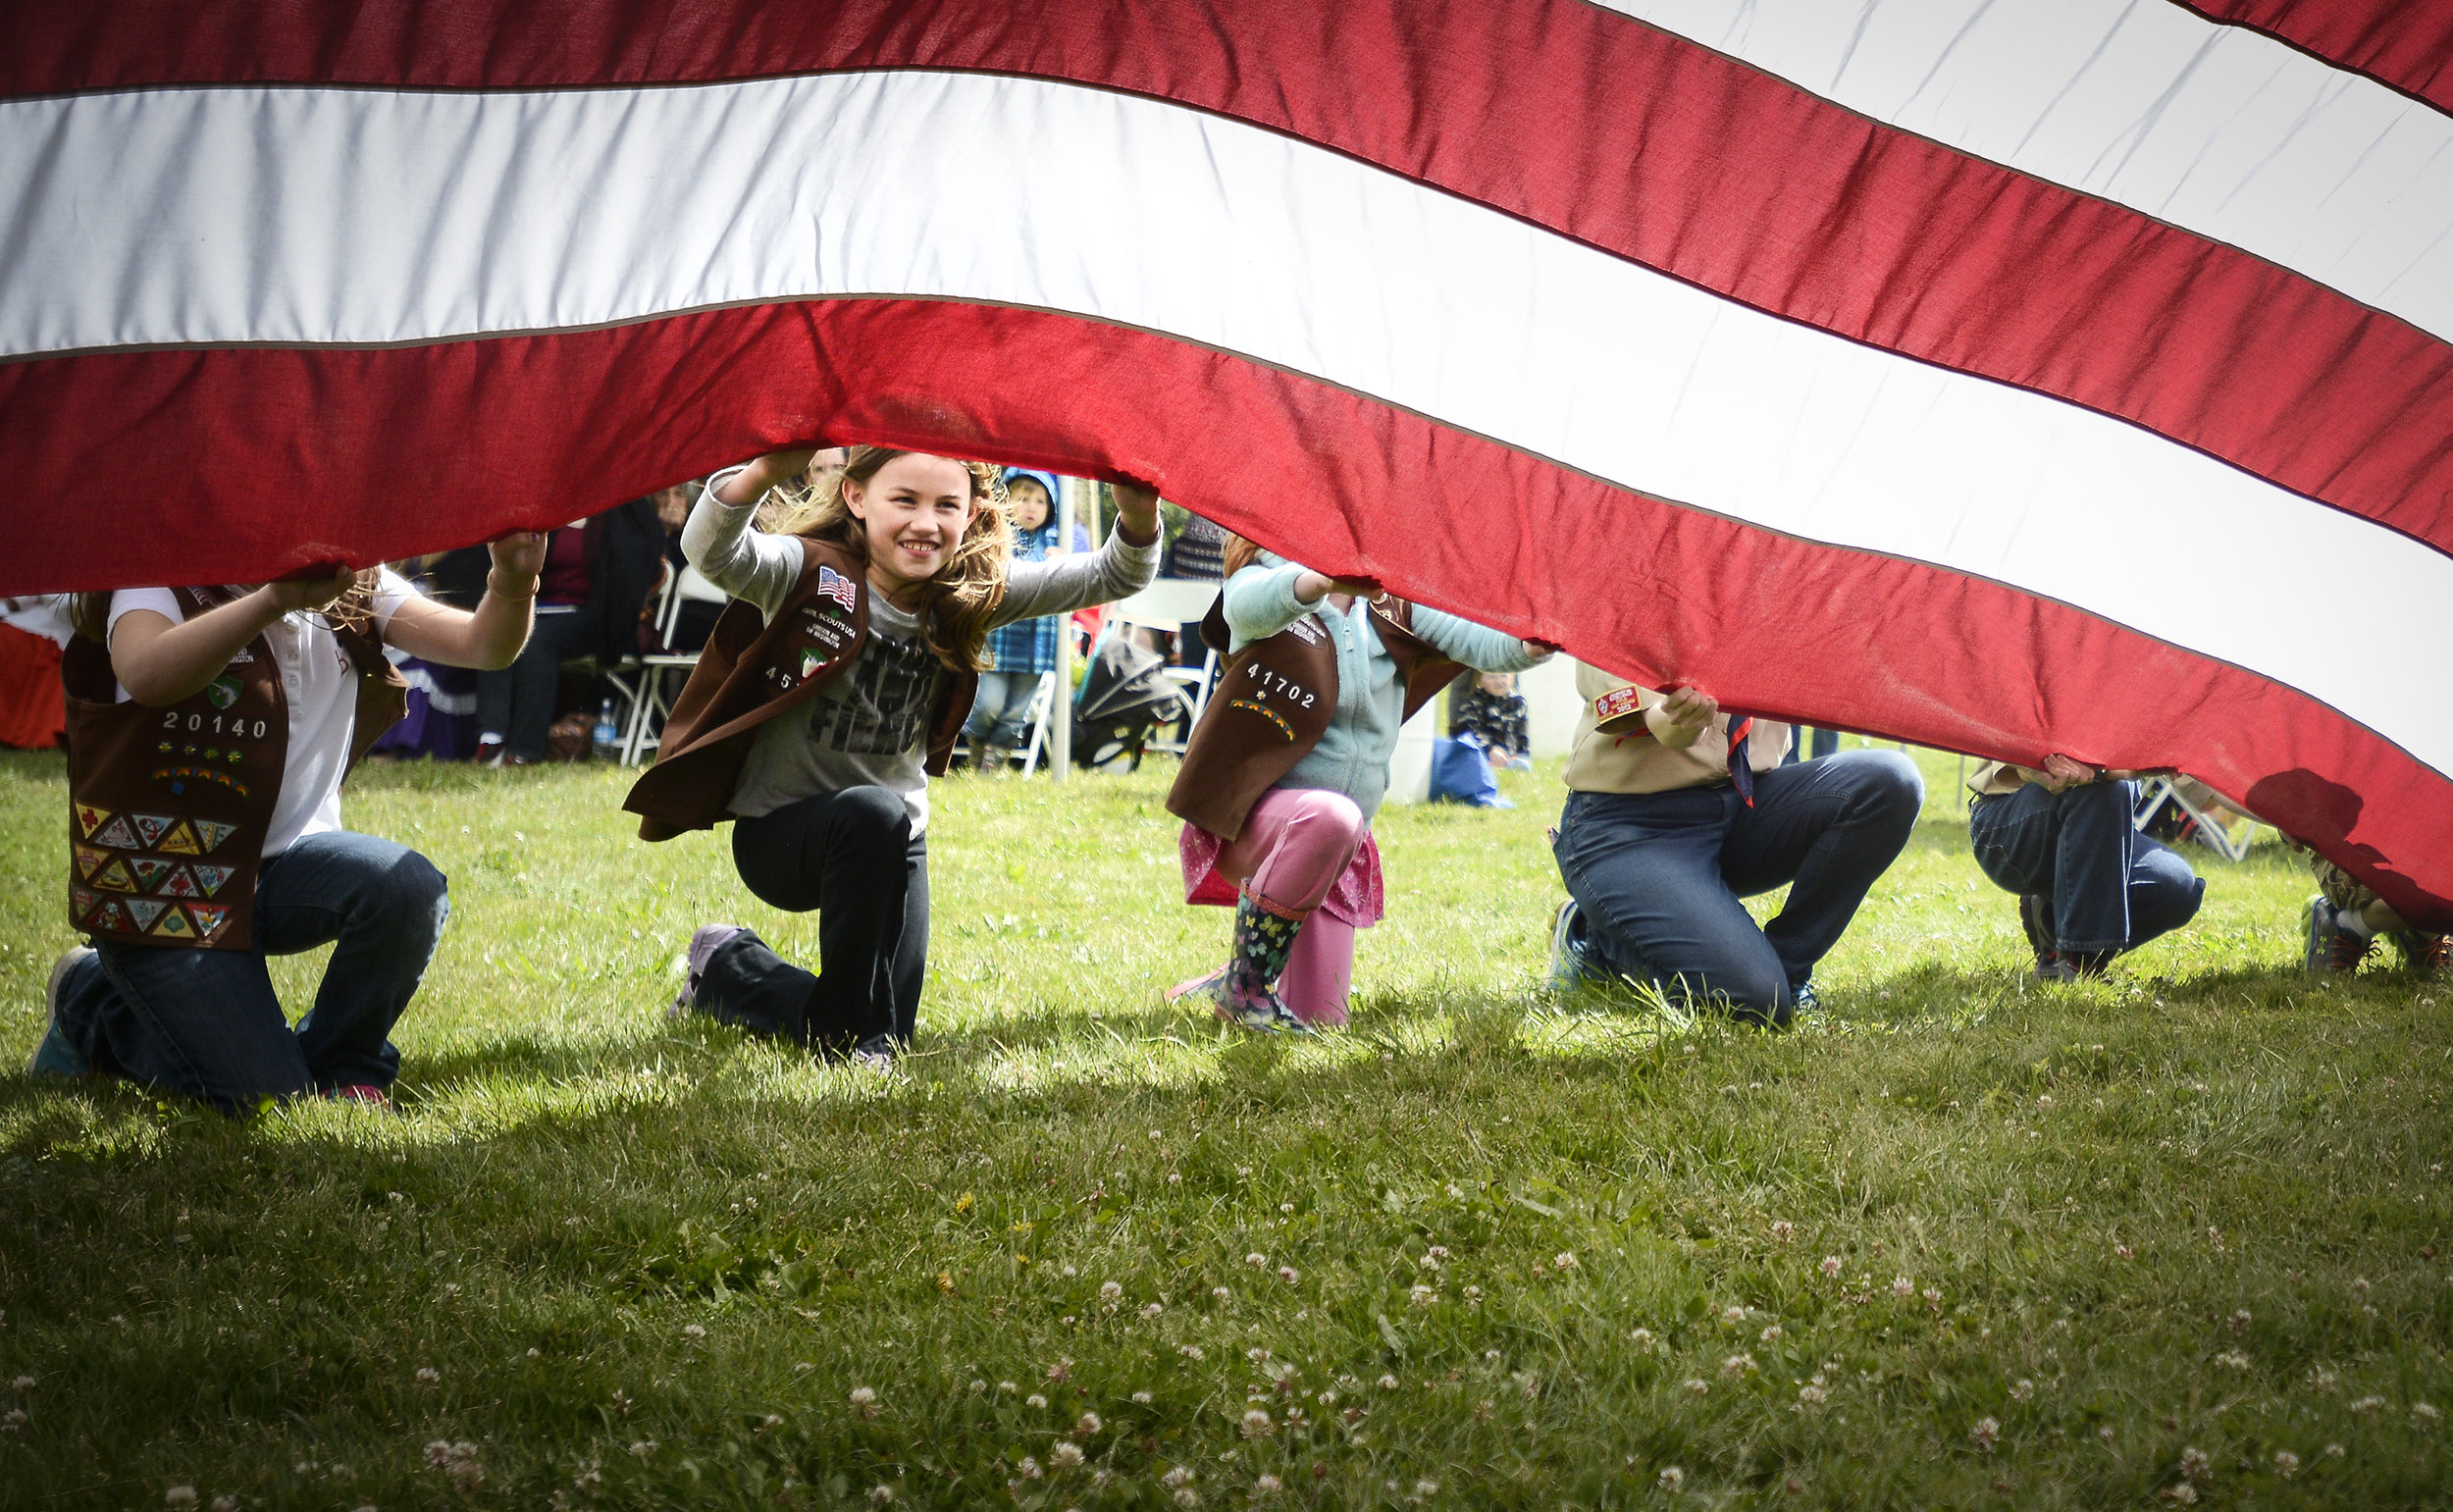 Mikaela Fisher, a member of Brownie Girl Scout Troop #45722, helps hold a flag at Fort Vancouver during the Flag Day celebration, Tuesday June 14, 2016. (Ariane Kunze/The Columbian)